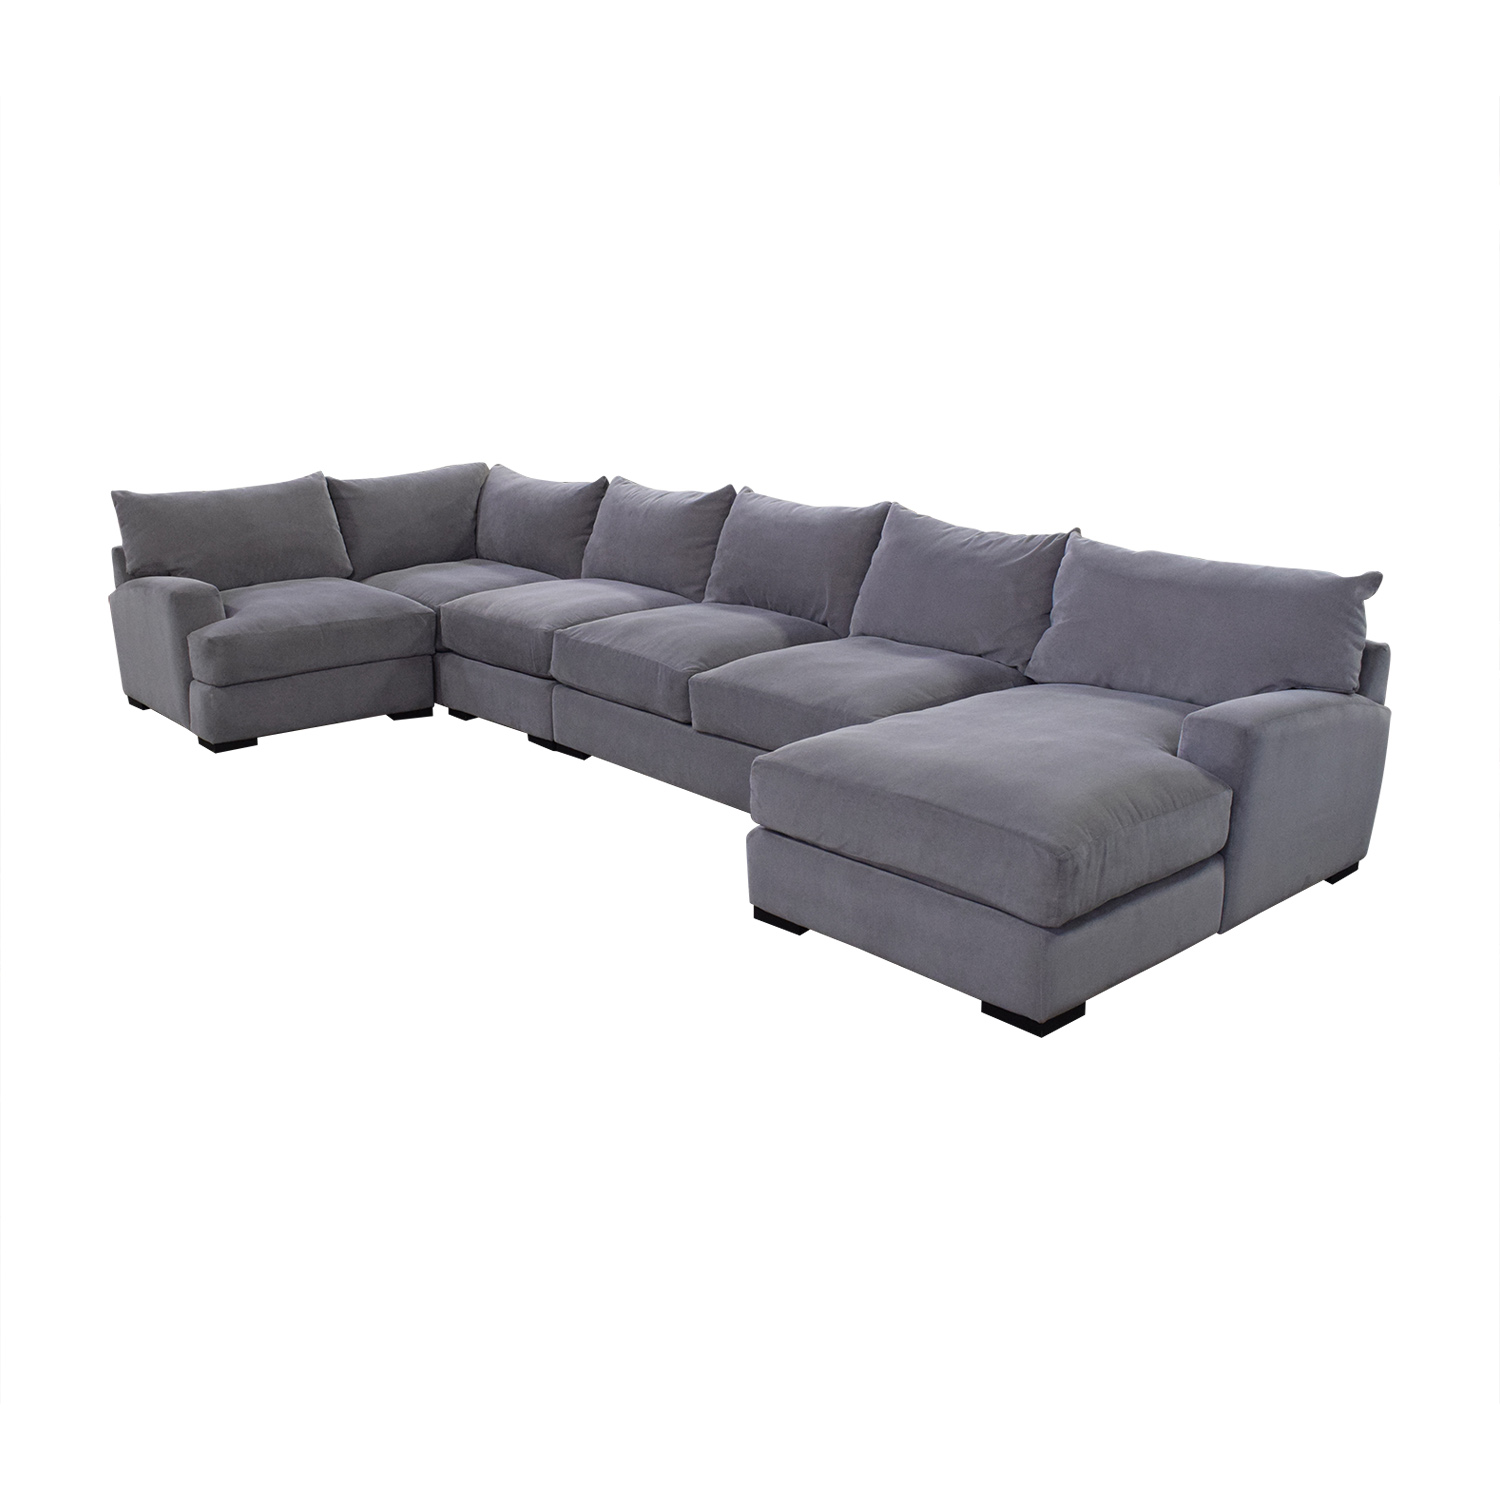 Macy's Rhyder 5 Piece Fabric Sectional Sofa with Chaise on sale